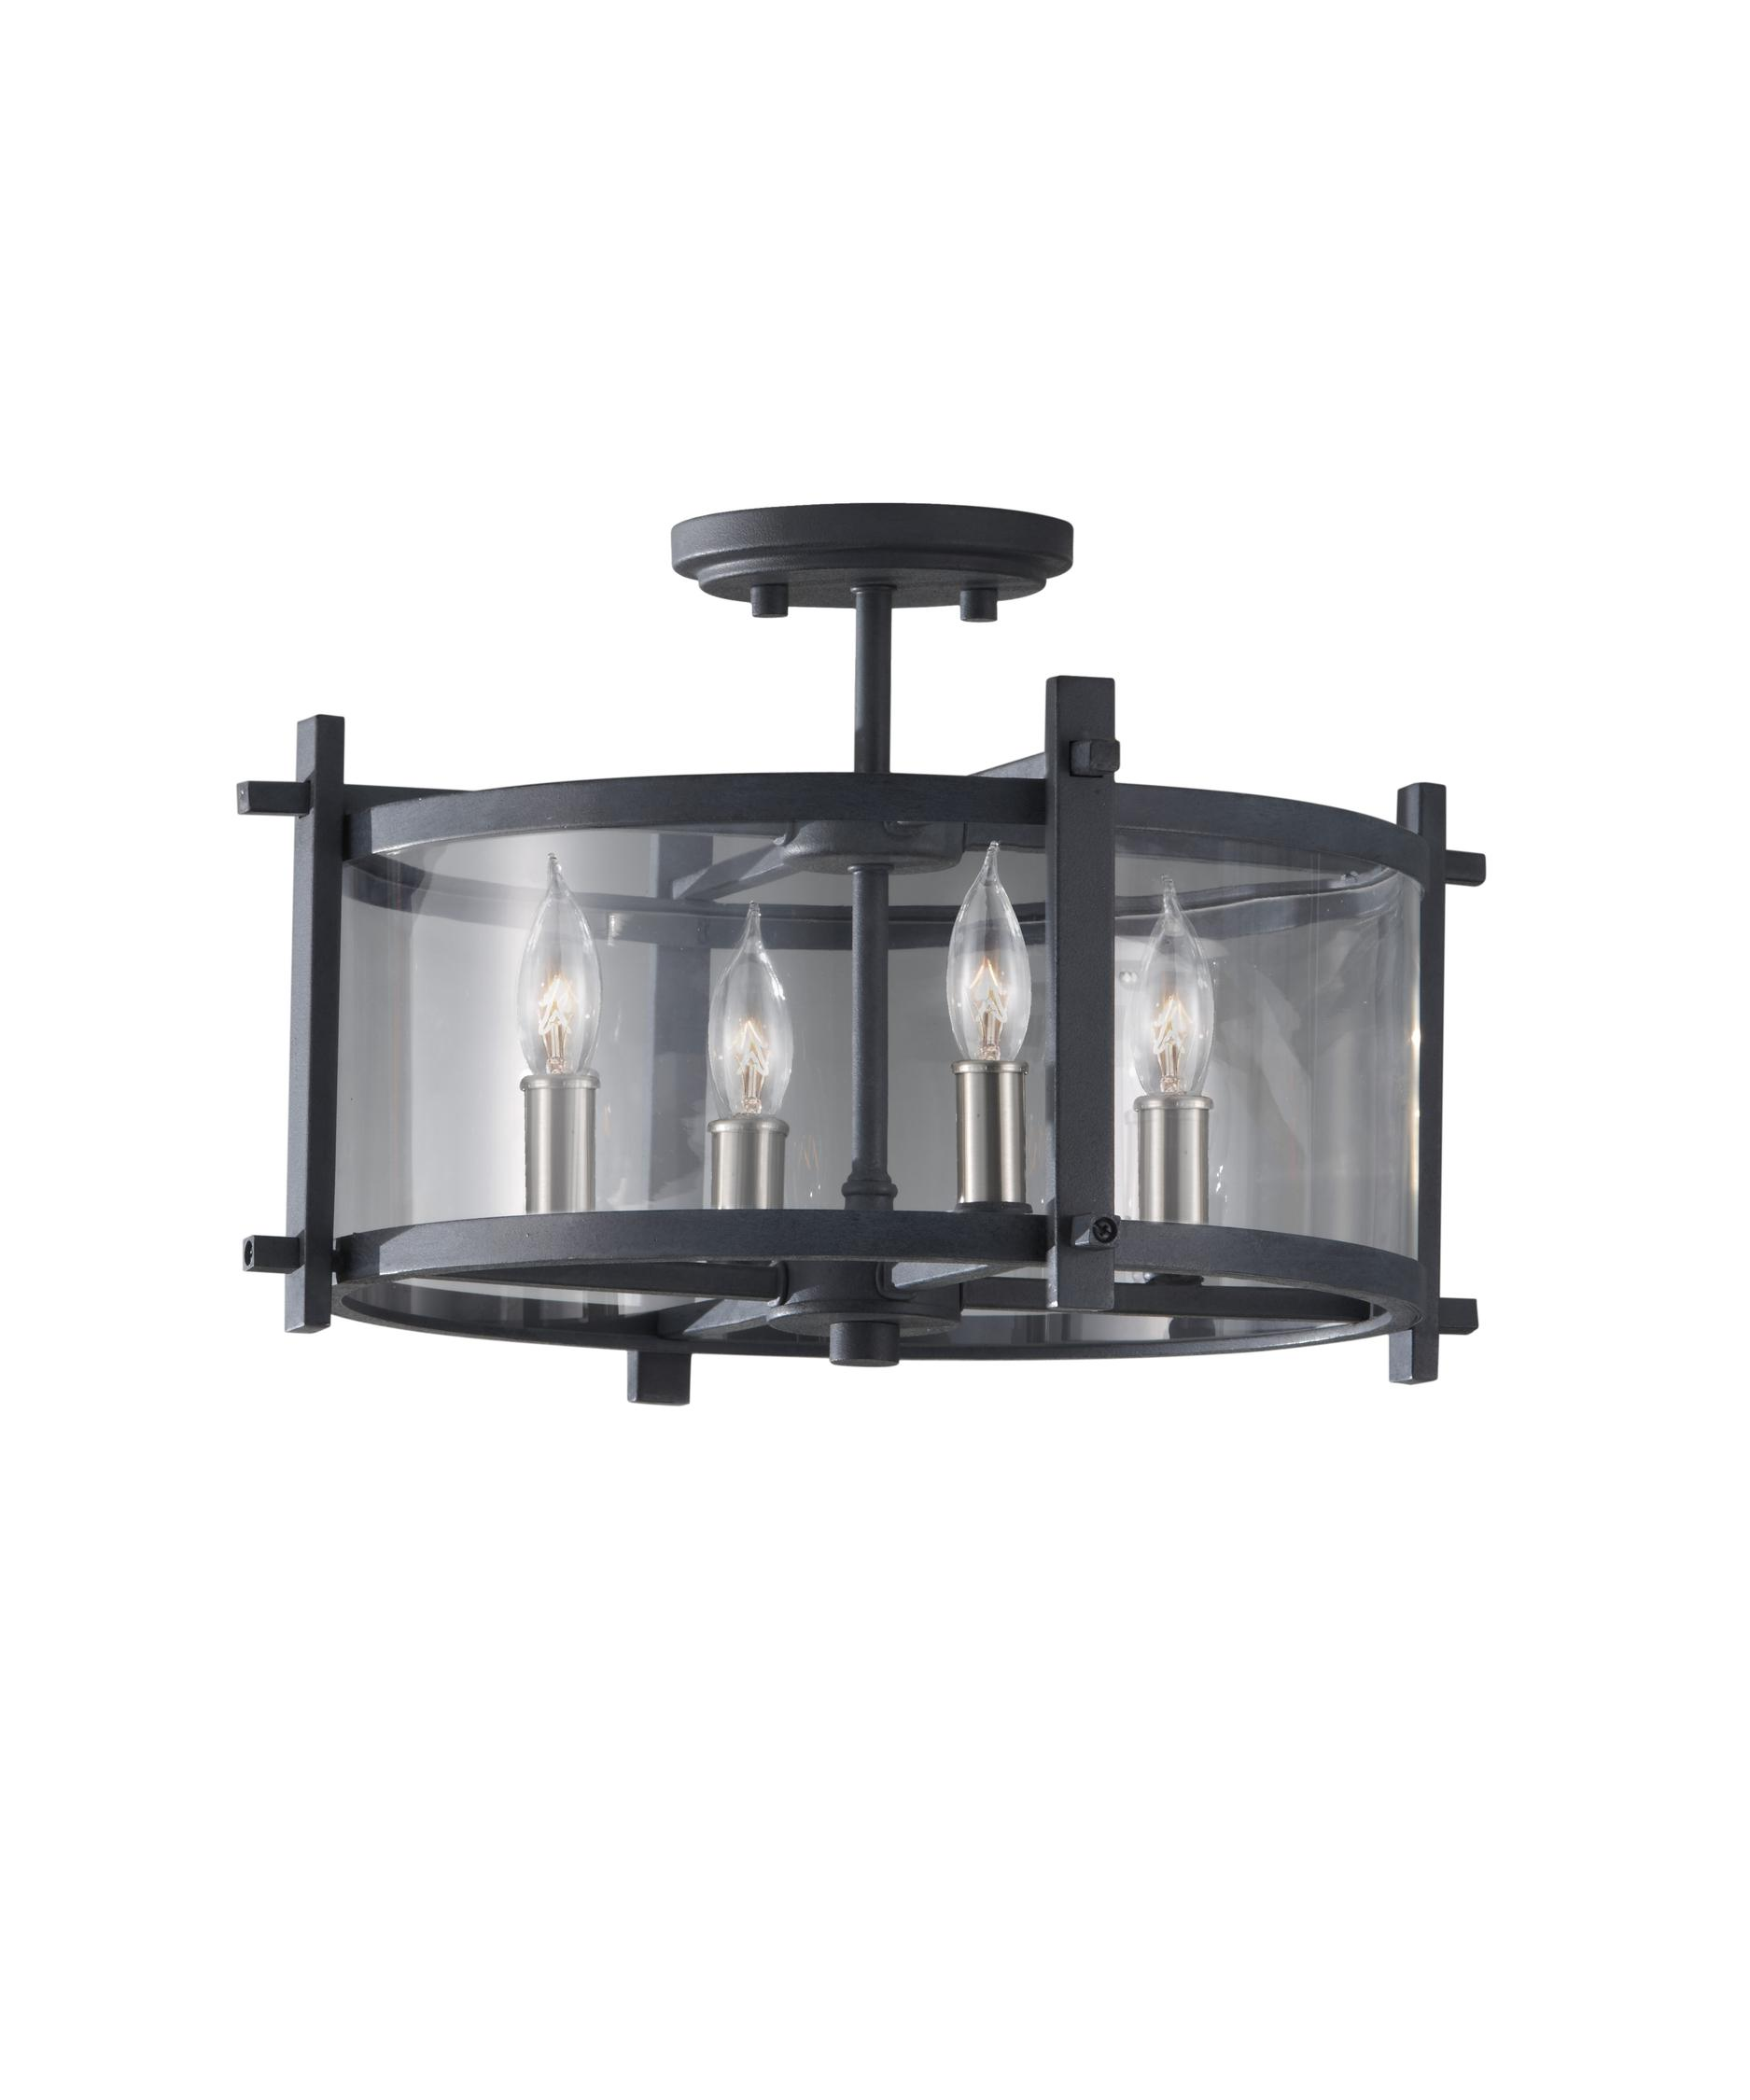 murray feiss sf292 ethan 16 inch wide semi flush mount | capitol